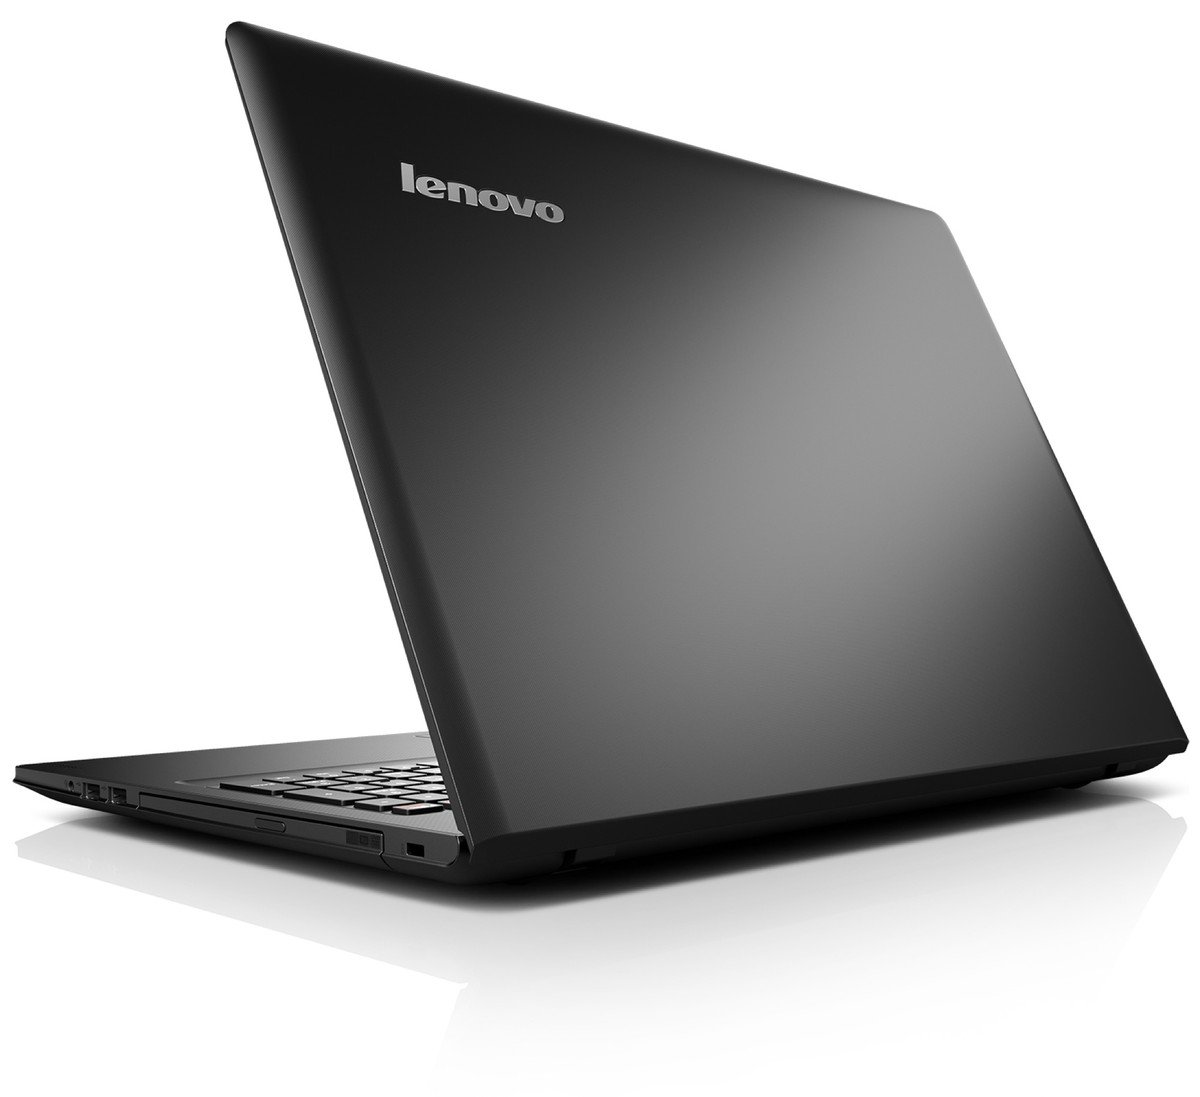 Lenovo presenta sus nuevos ideapad e ideacenter con Windows 10